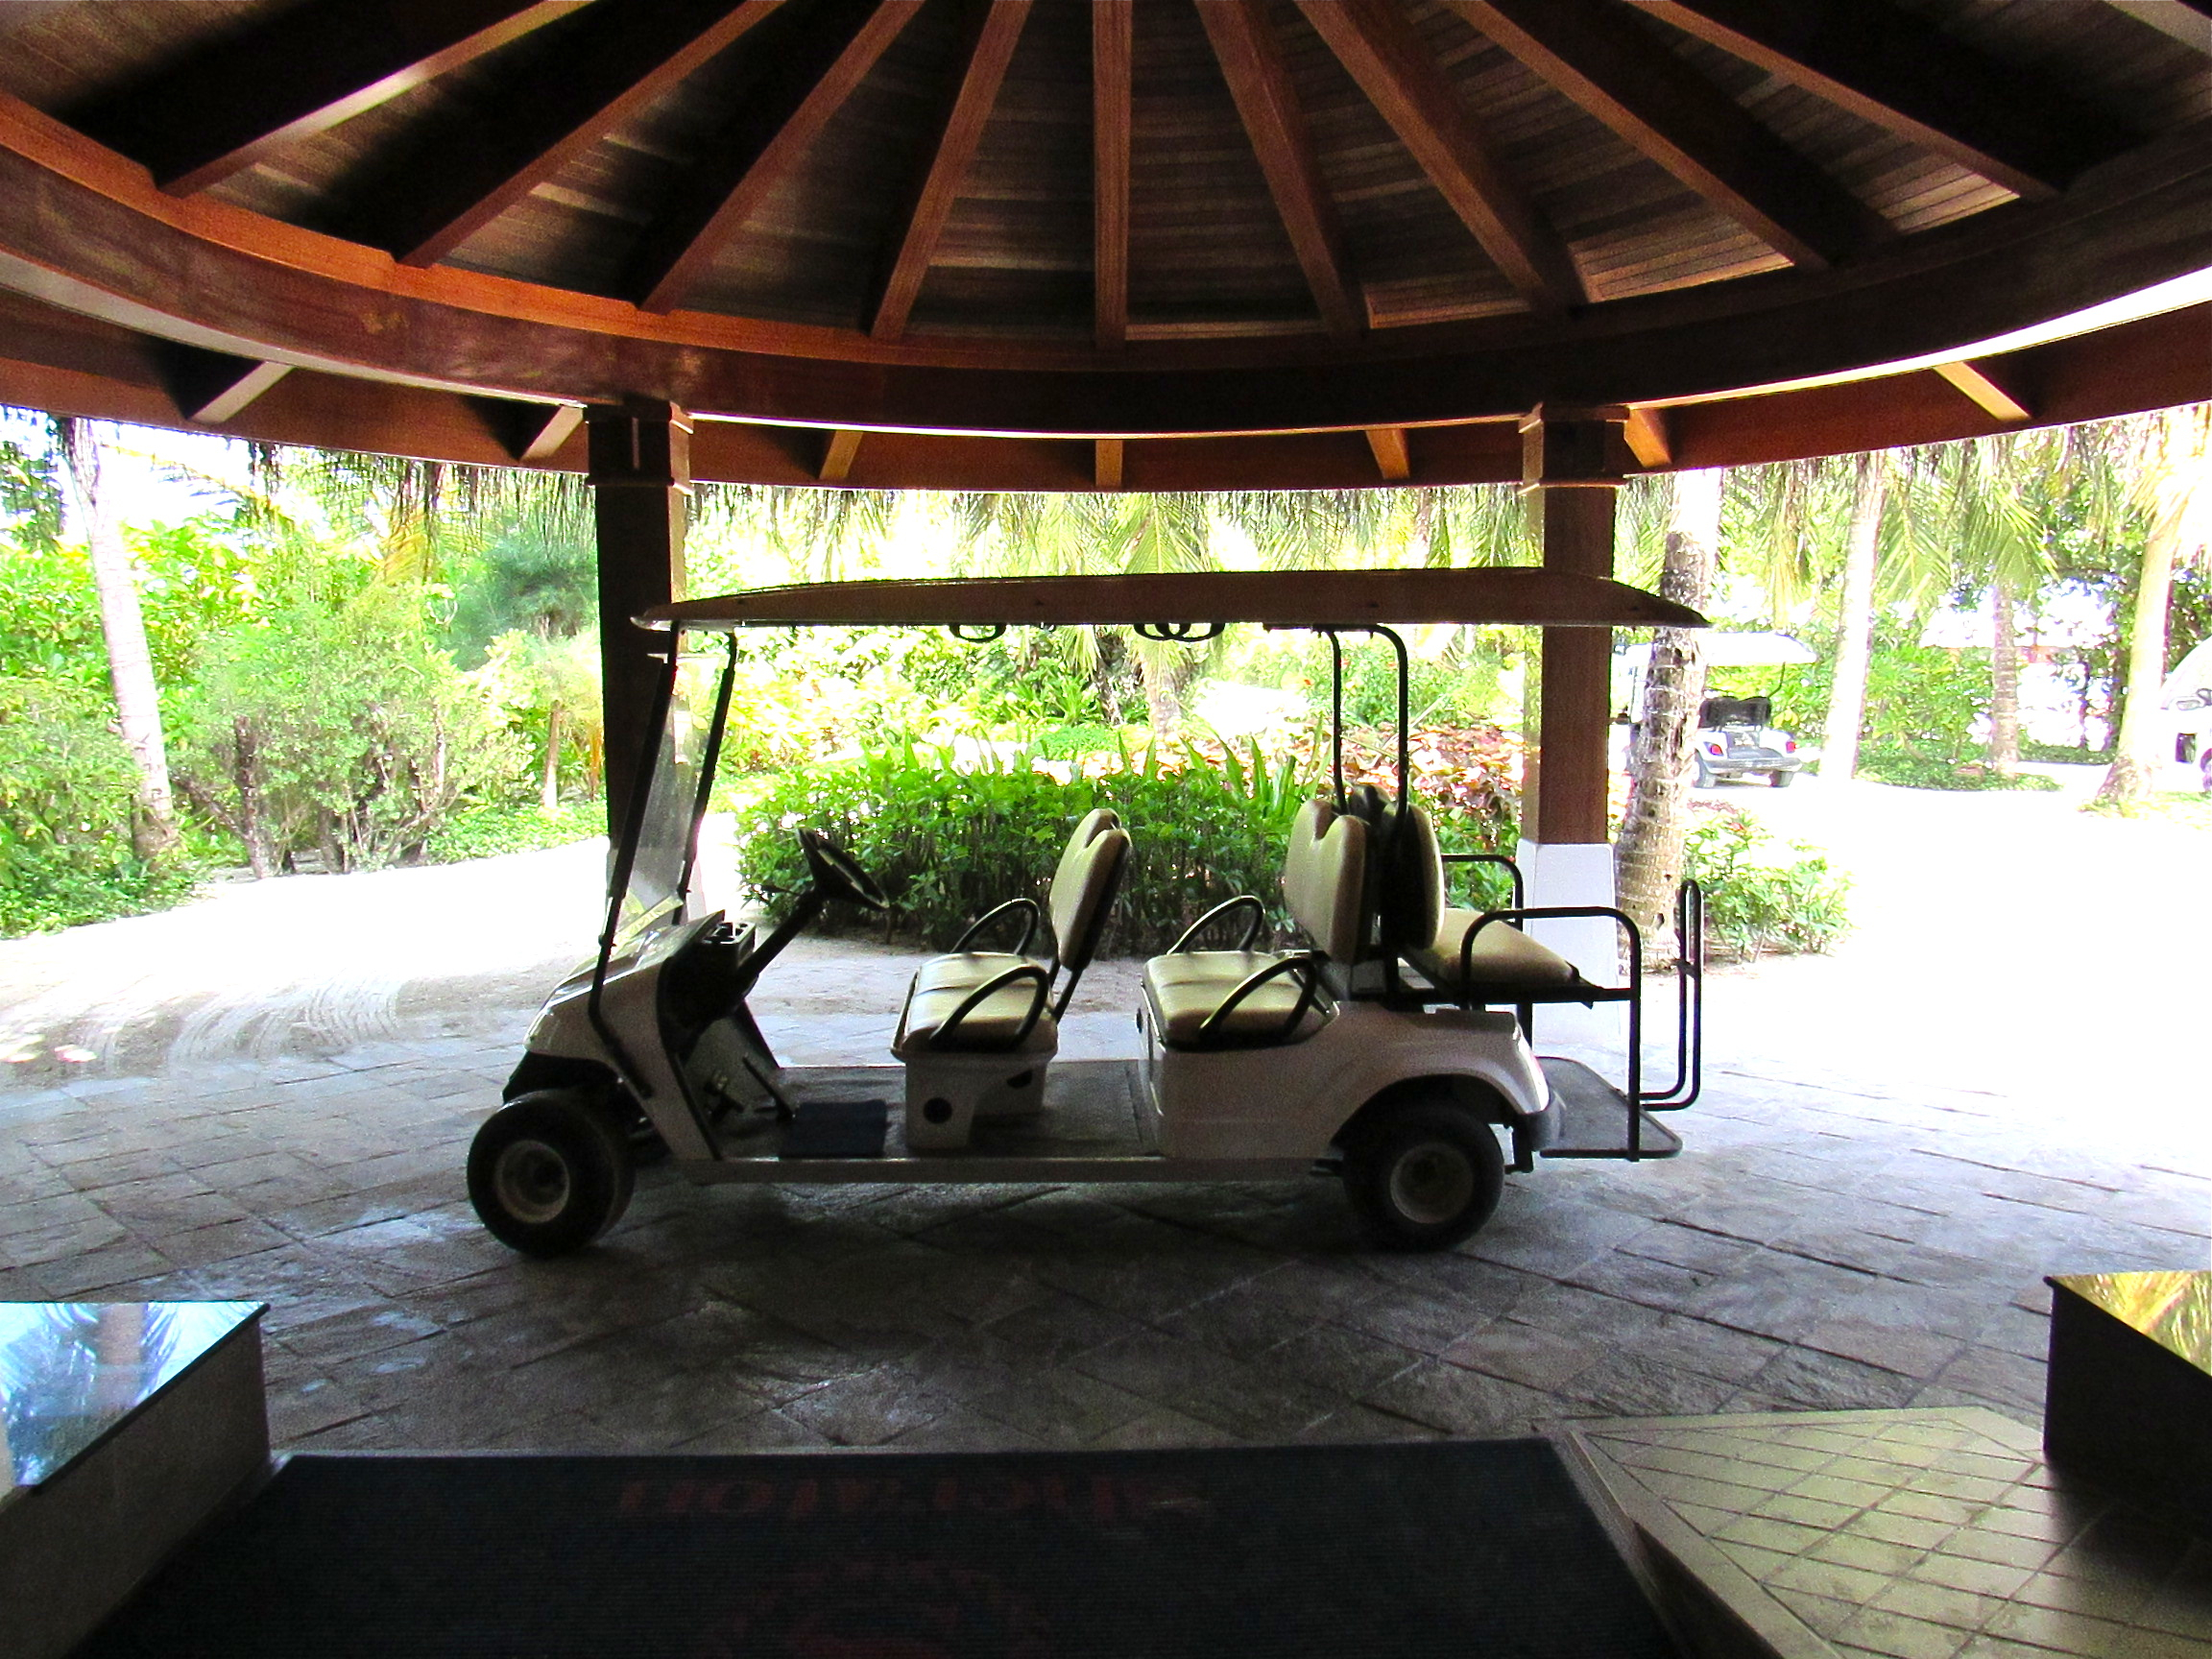 maldives sheraton resort buggy